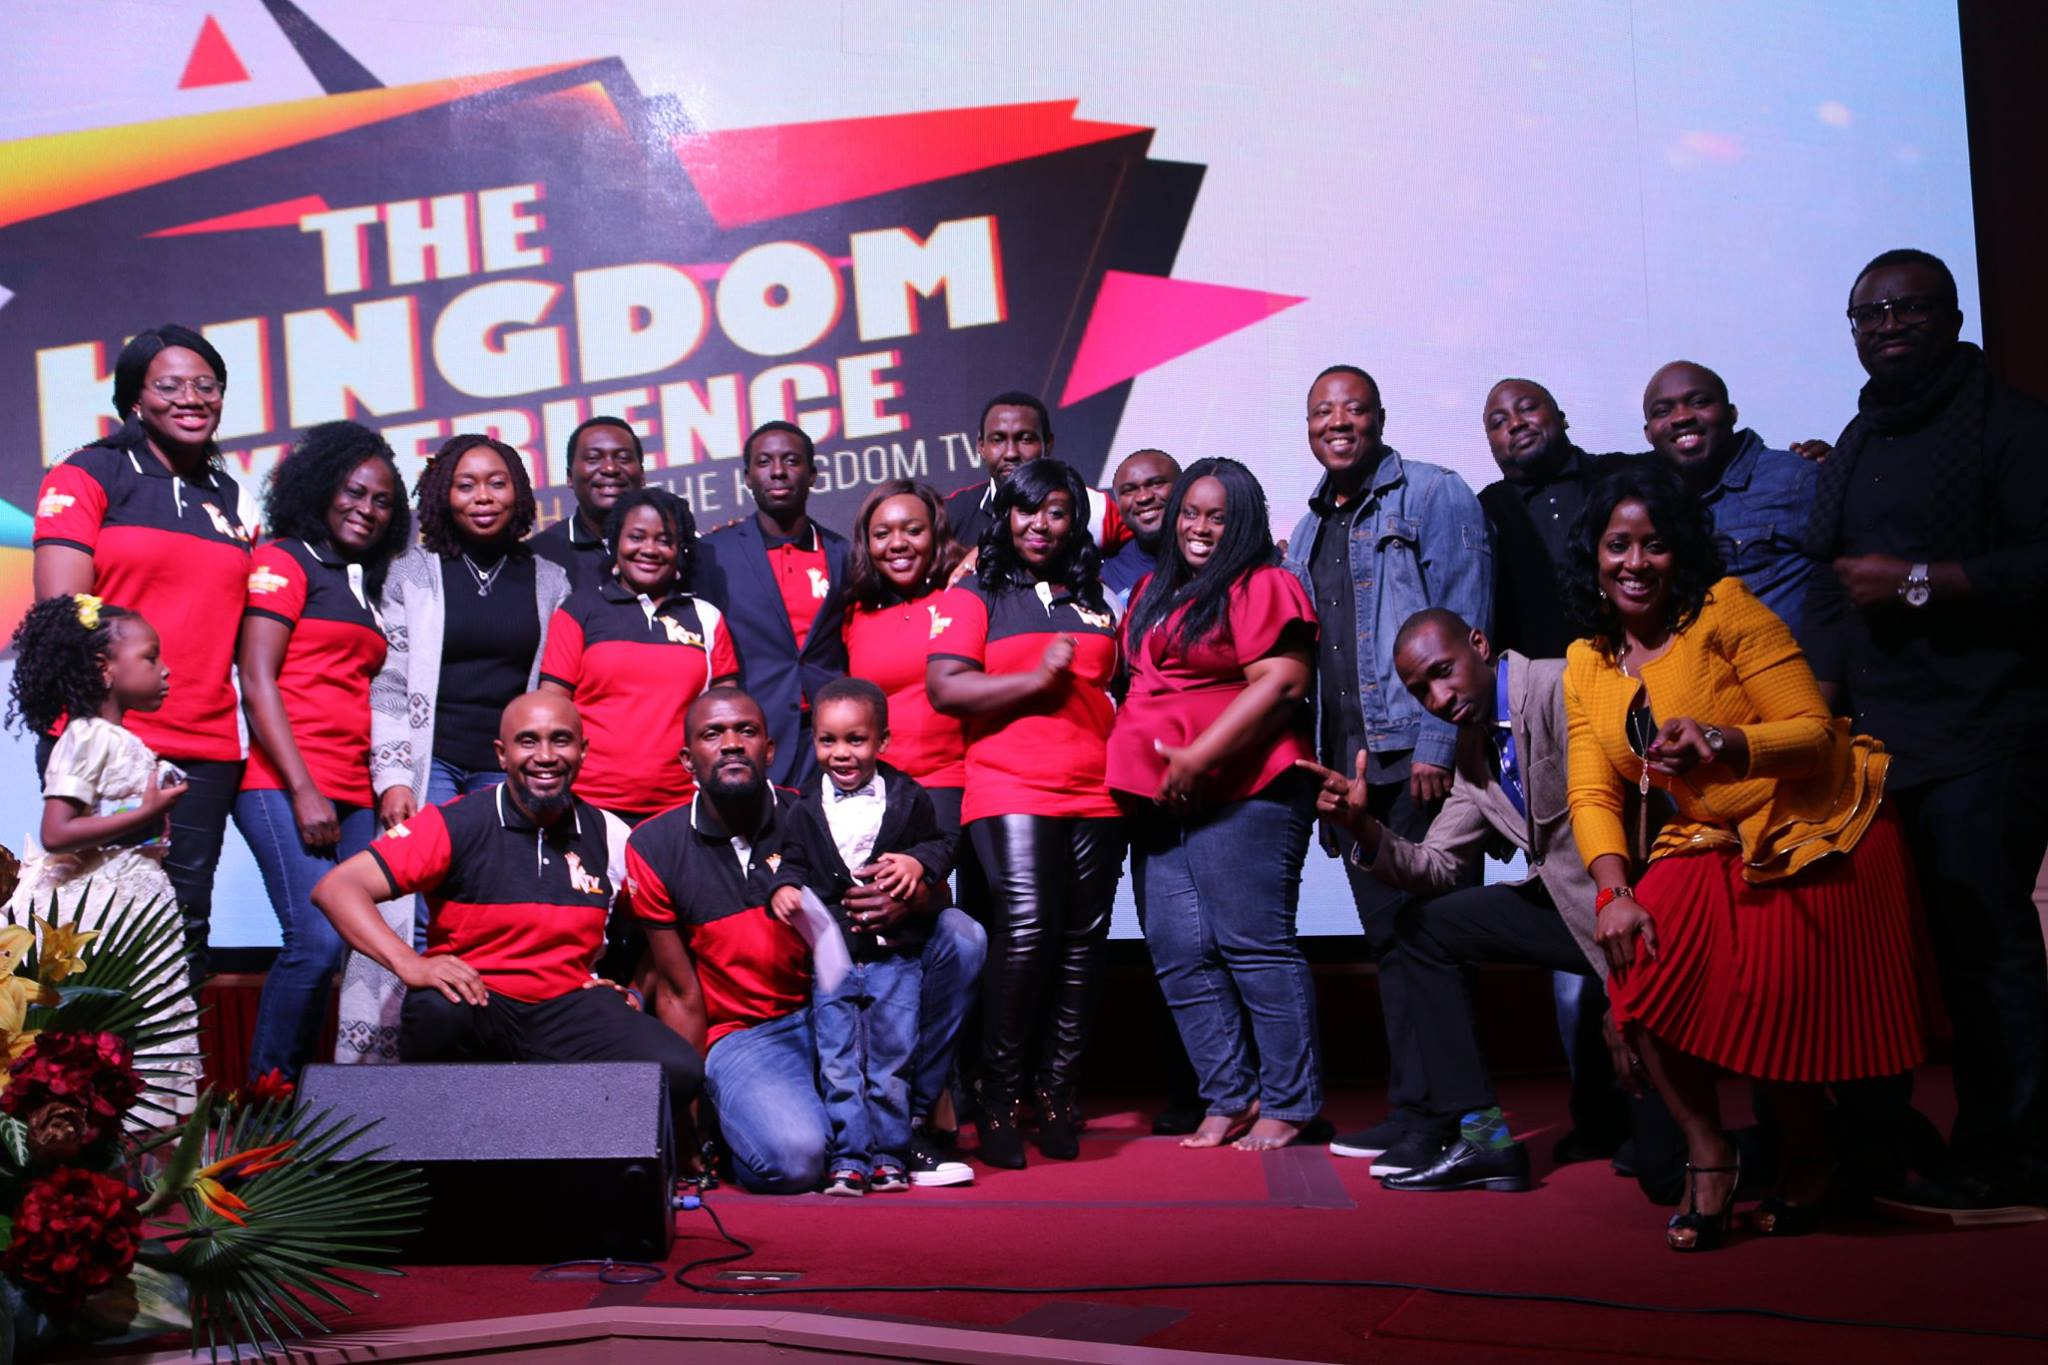 The Kingdom TV crew